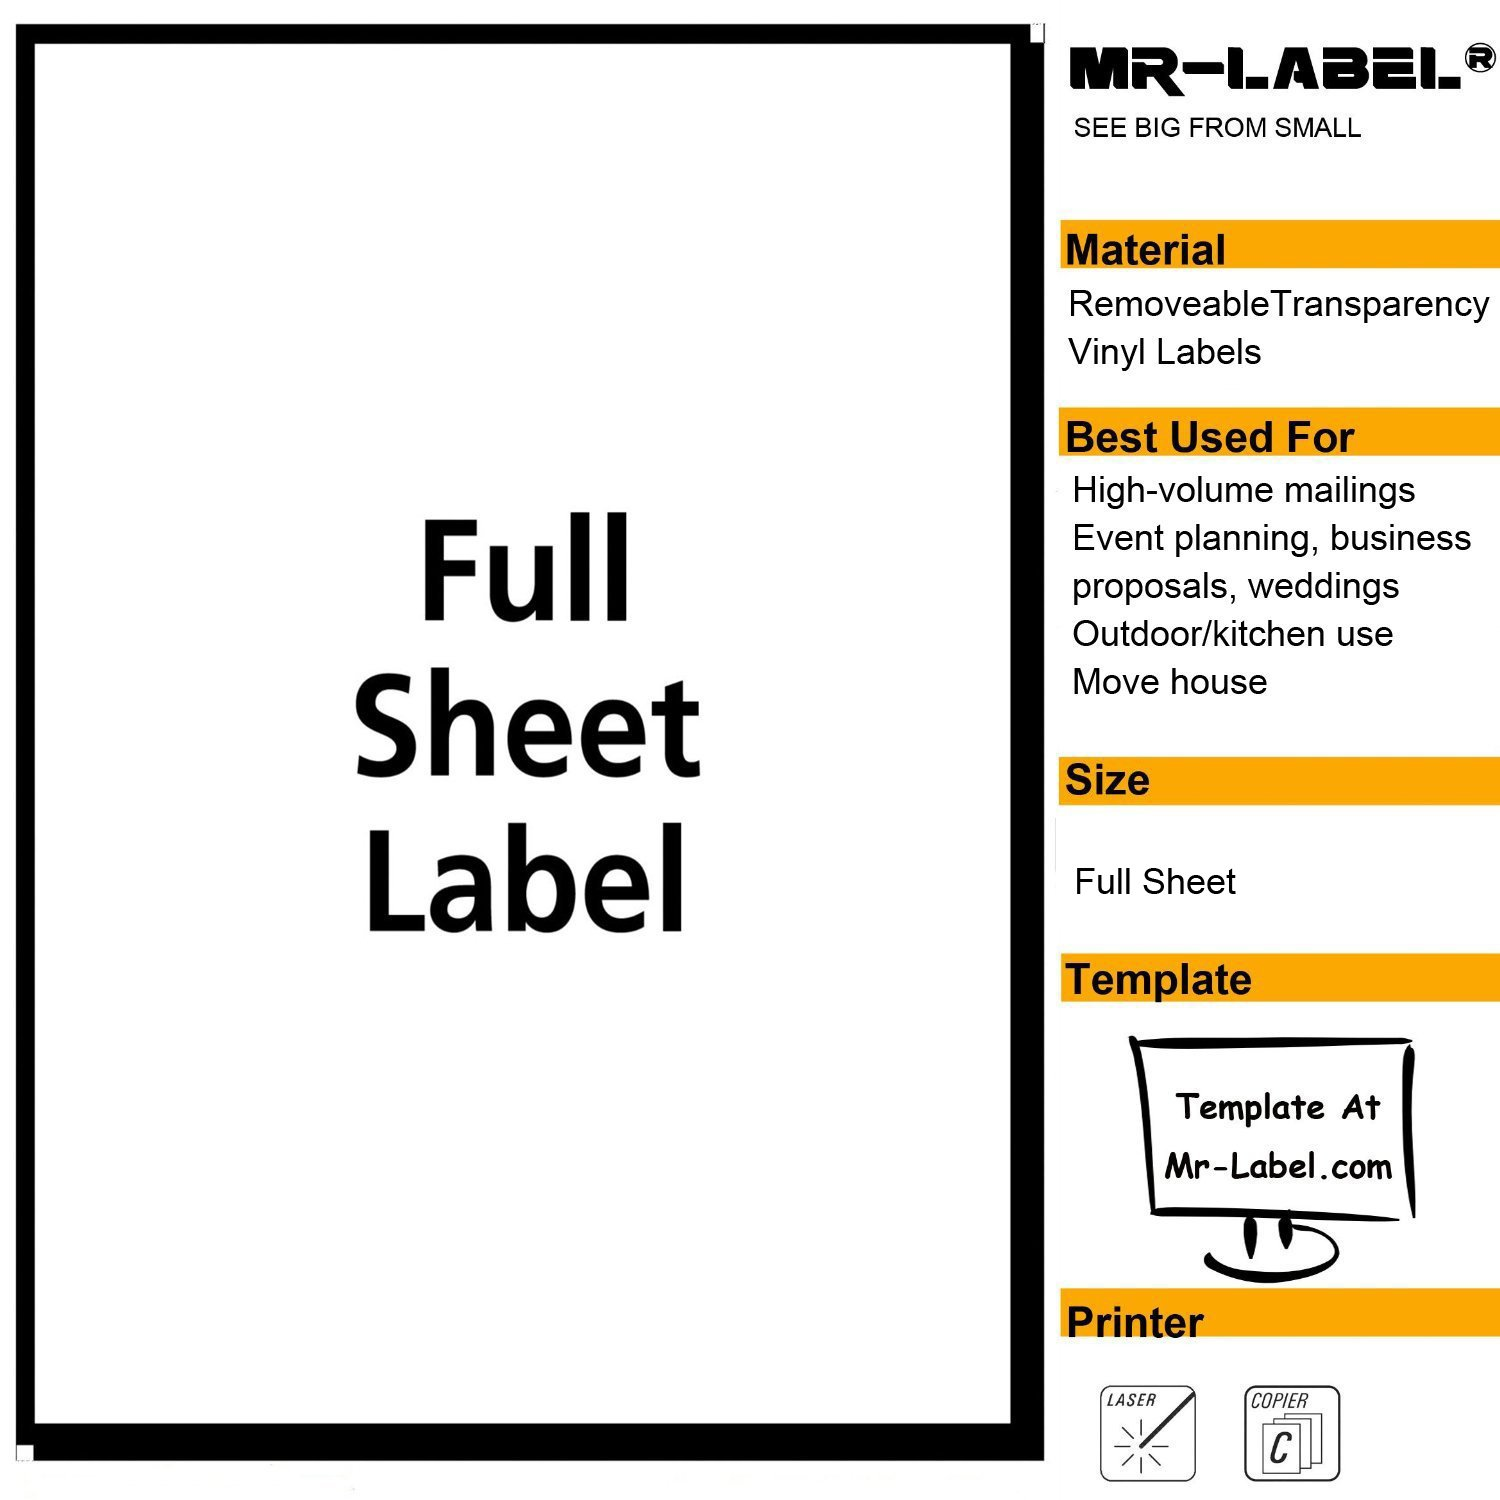 MR-LABEL Clear Full Letter Sheet Removable Adhesive Labels -Transparent Tear-Resistant Waterproof Stickers for Kitchen Use | Manufacturing and Storage-Laser Print Only (100 Sheets) by MR-LABEL